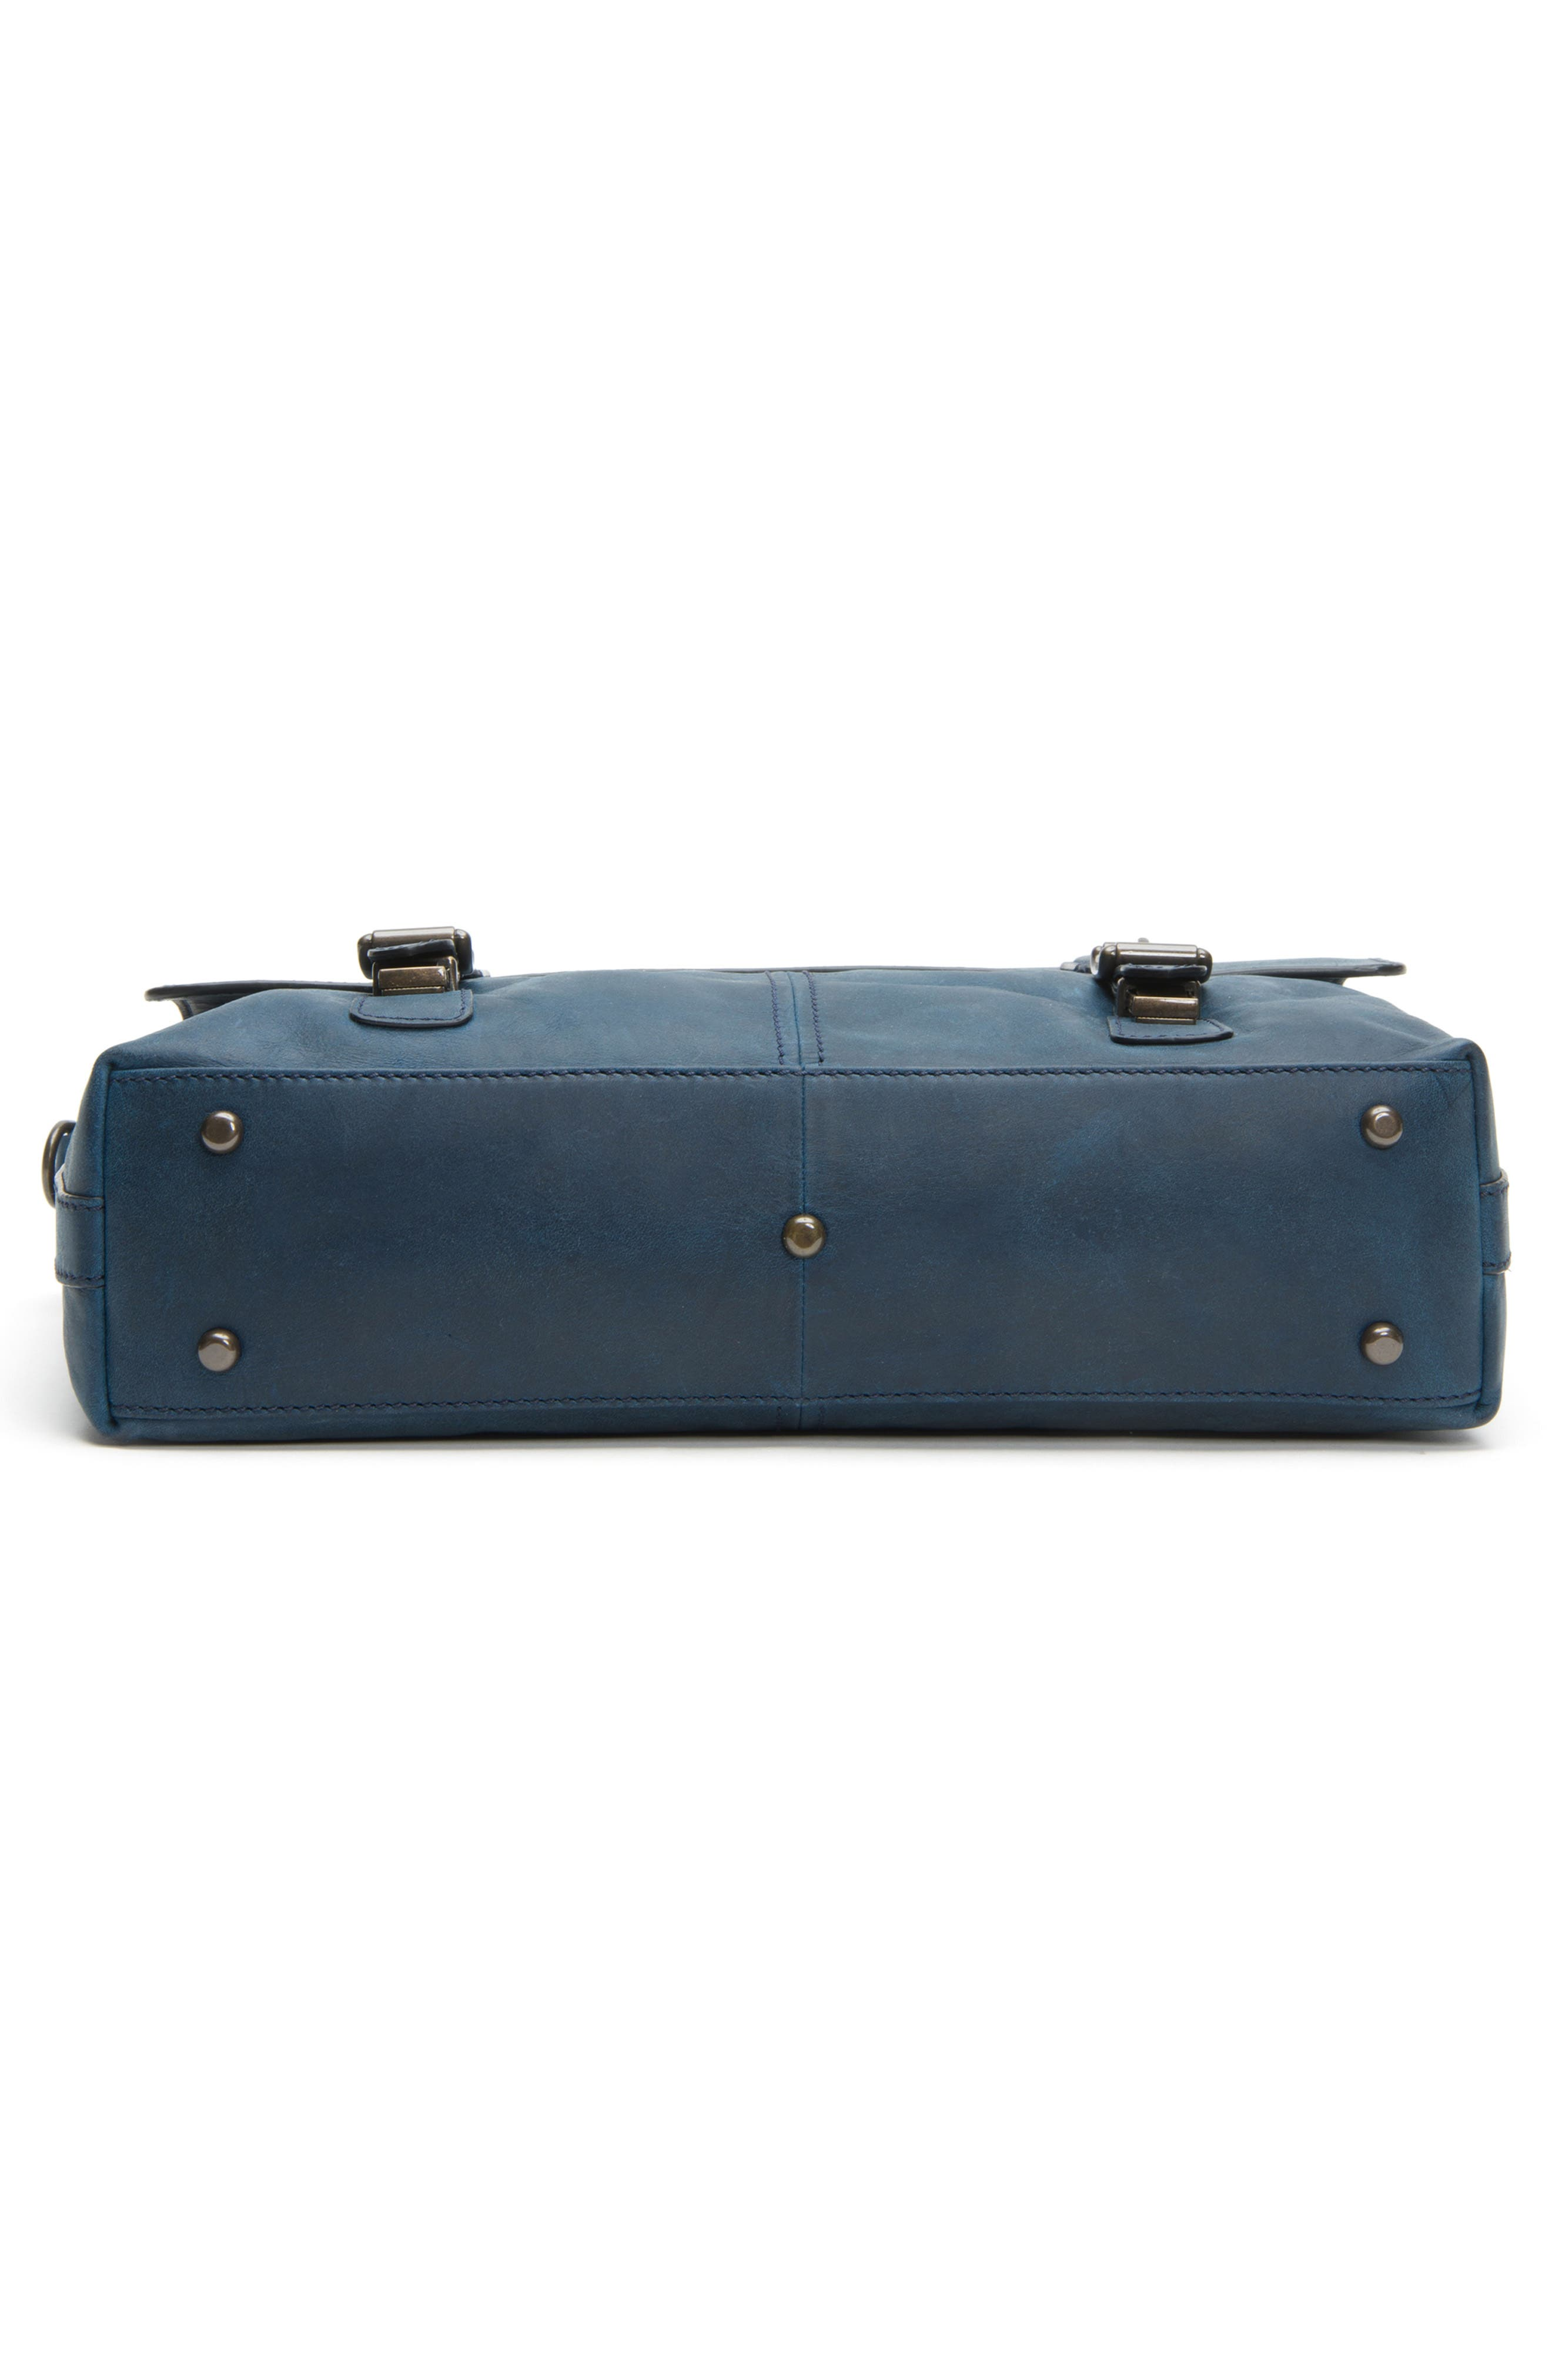 FRYE, Logan Leather Briefcase, Alternate thumbnail 7, color, NAVY